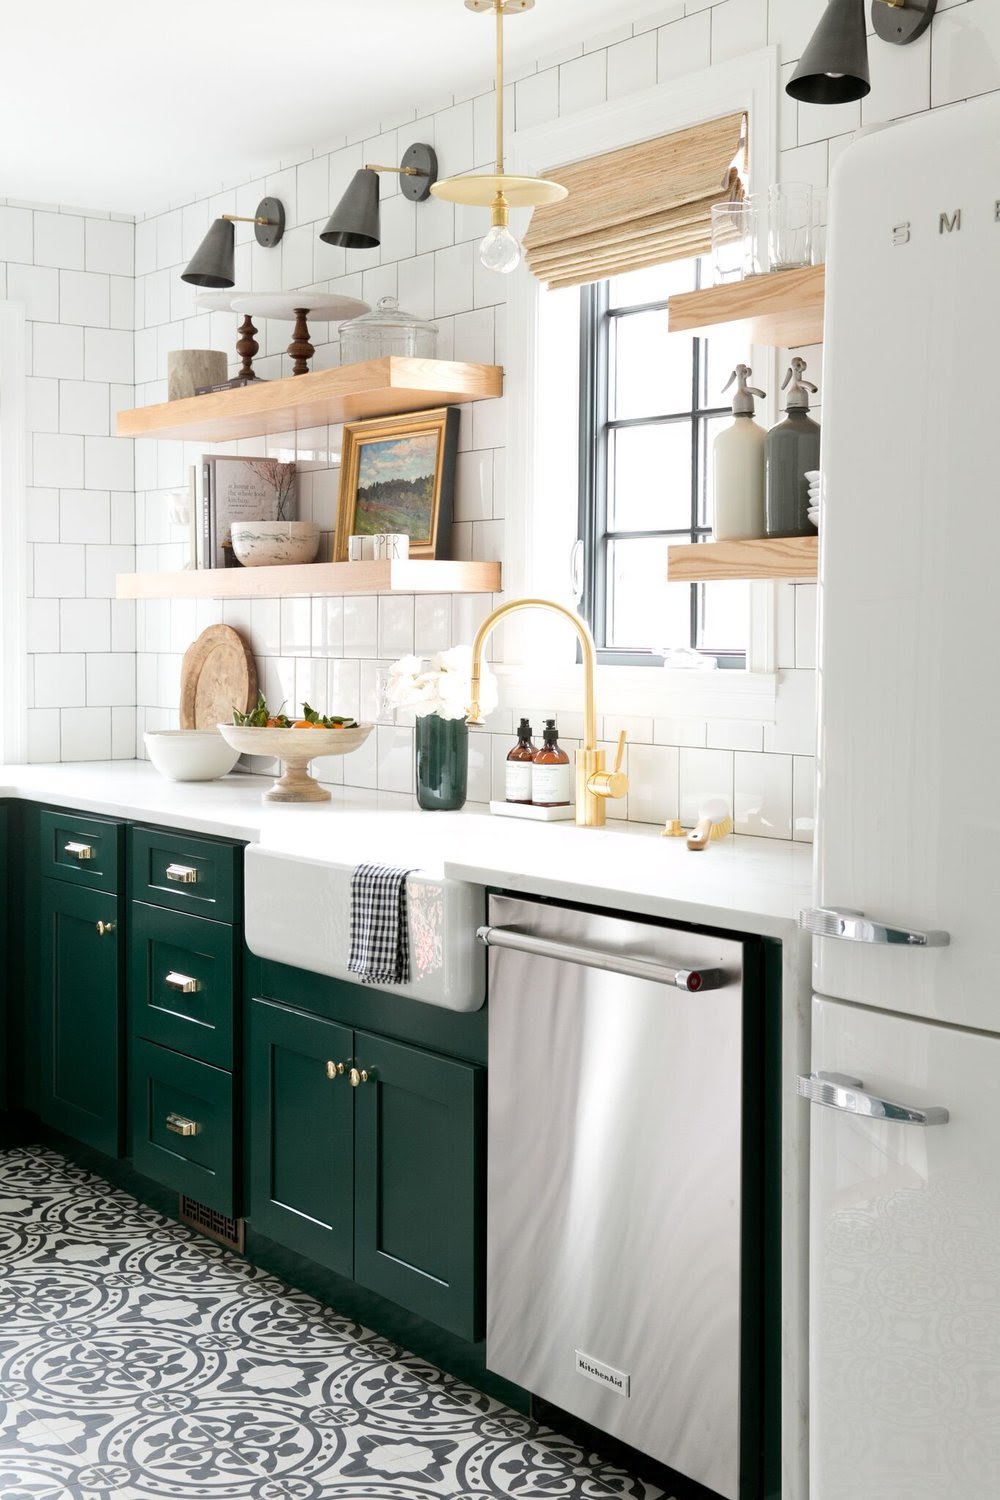 Our Paint Guide To Cabinet Colors Studio Mcgee